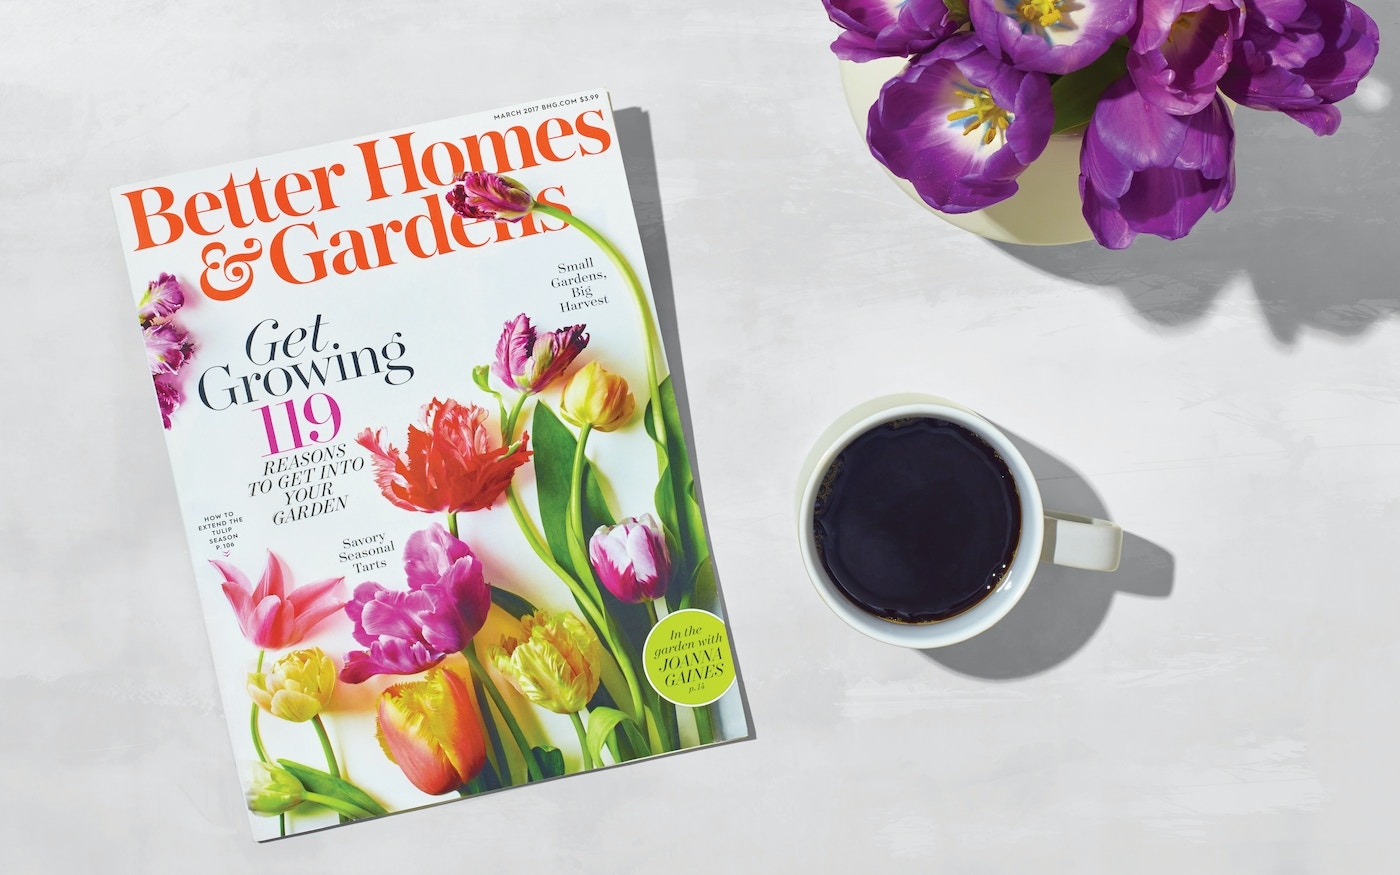 Better Homes & Gardens magazine